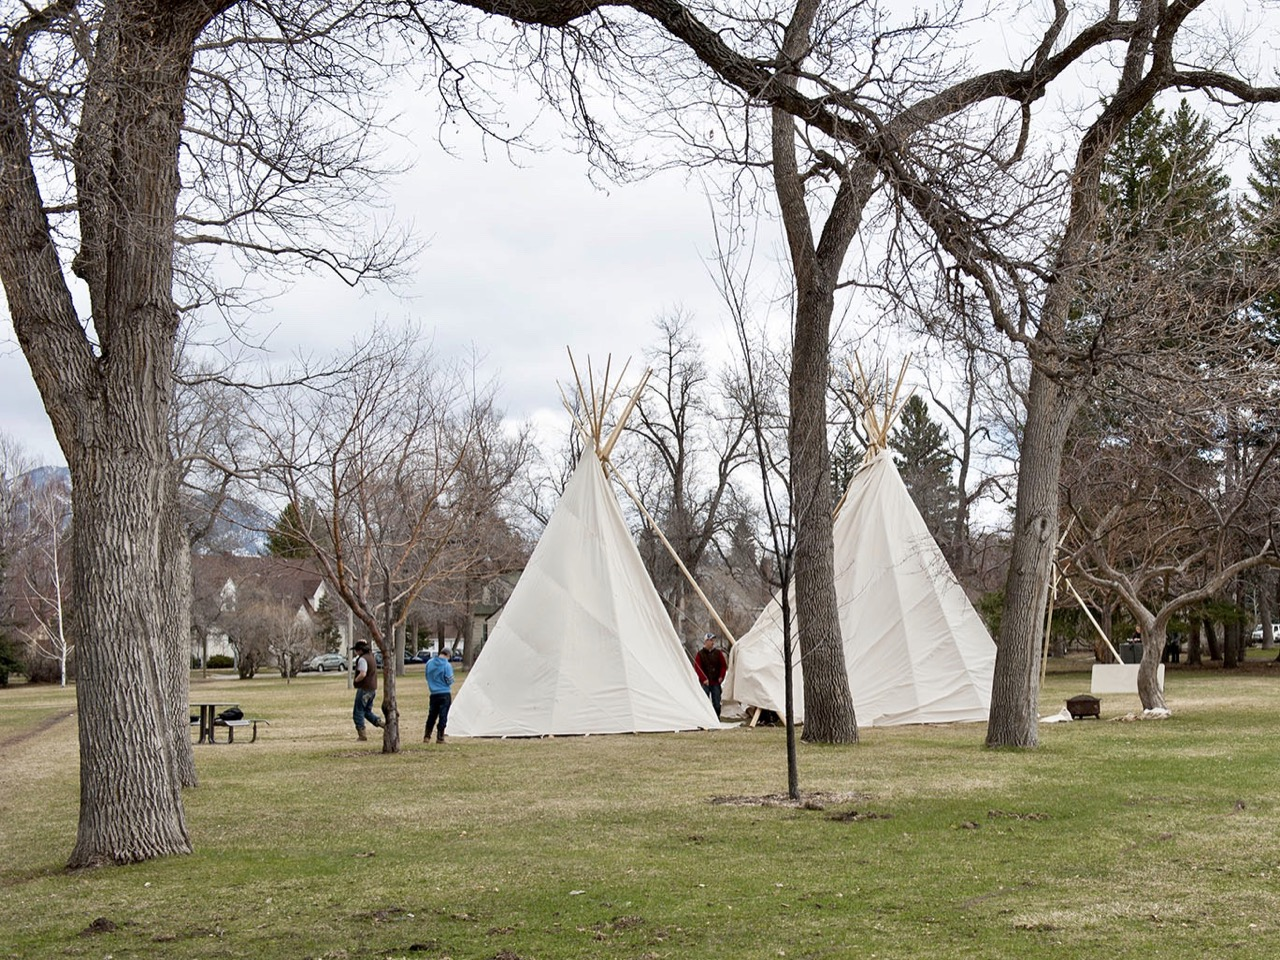 MSU News: Blessing for new American Indian Hall set for powwow weekend